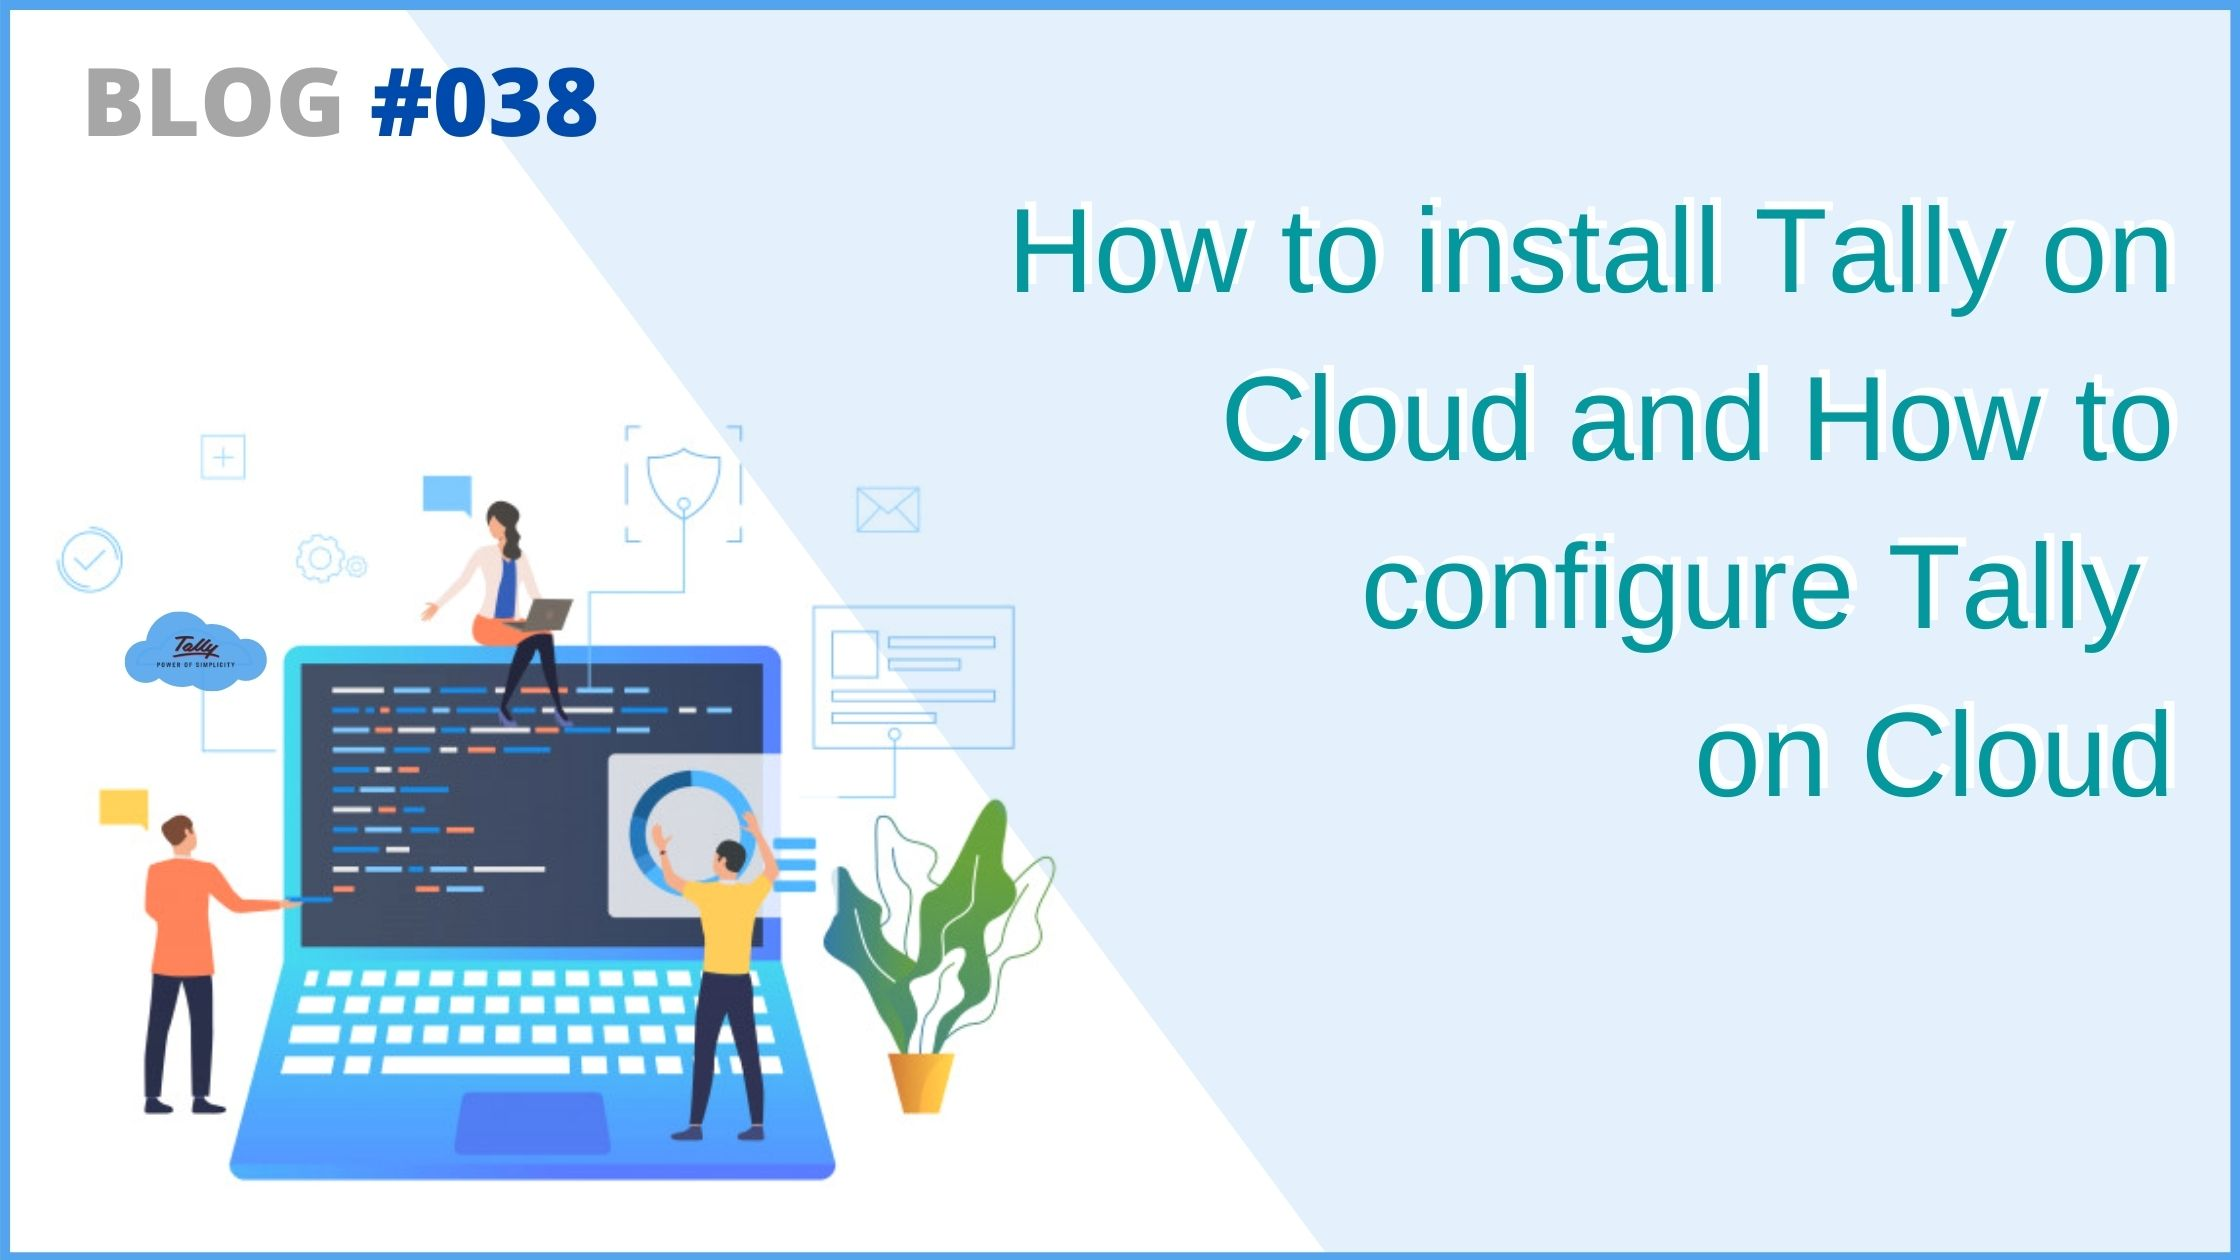 Tally on cloud configuration and installation on Cloud